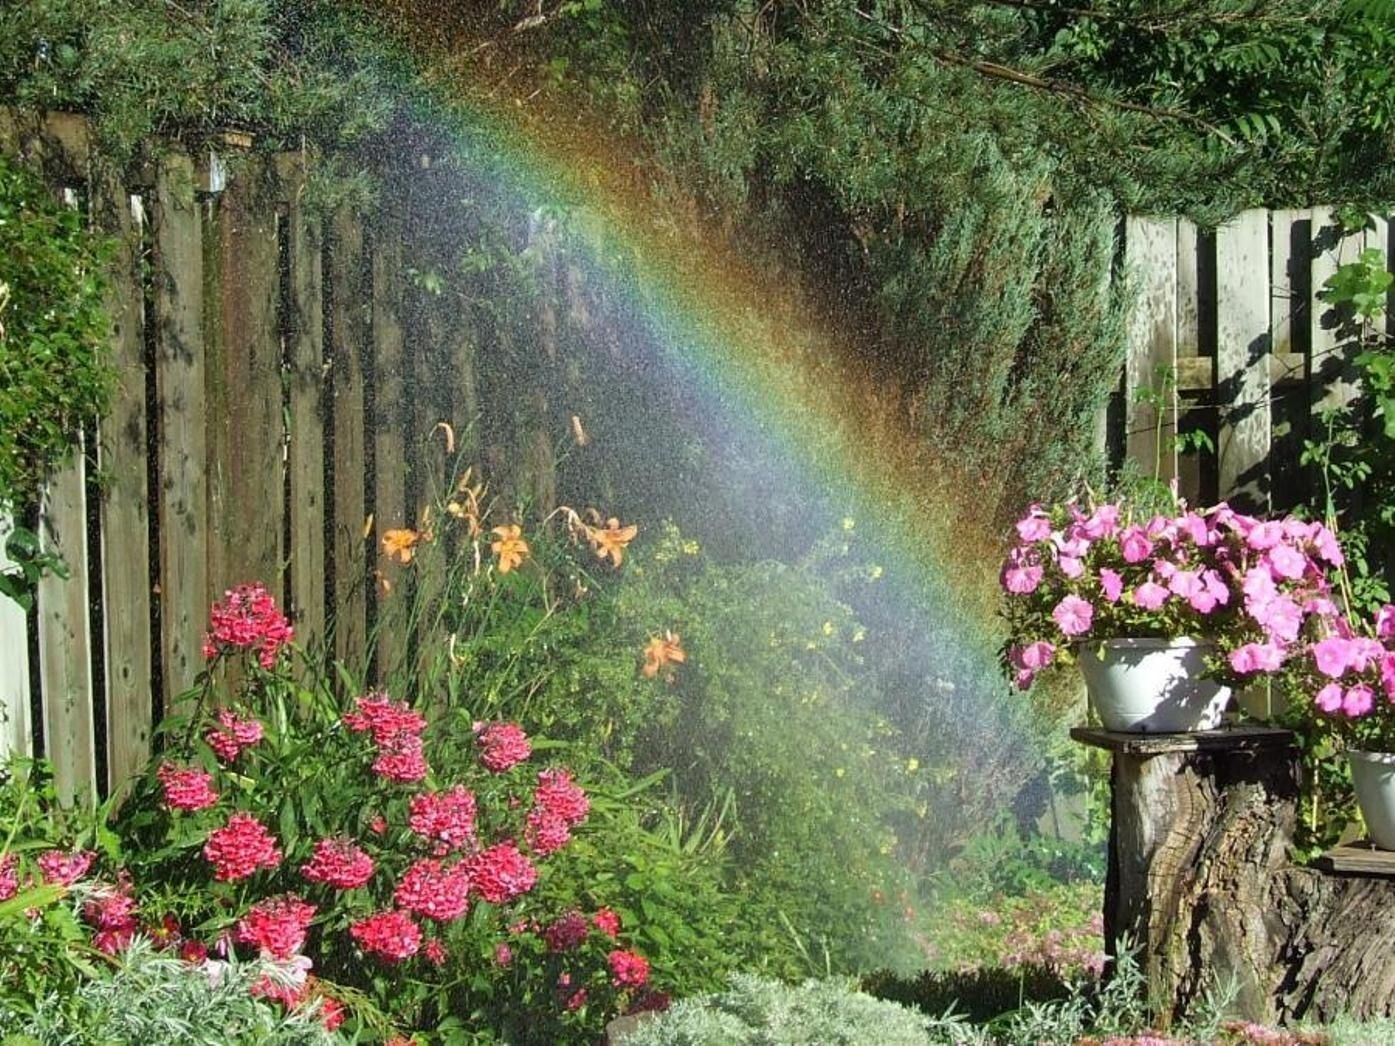 Rainbows Free Download Download Wallpaper Rainbow Flowers Rain Free Desktop In Rainbow Flowers Beautiful Gardens Rainbow Rain